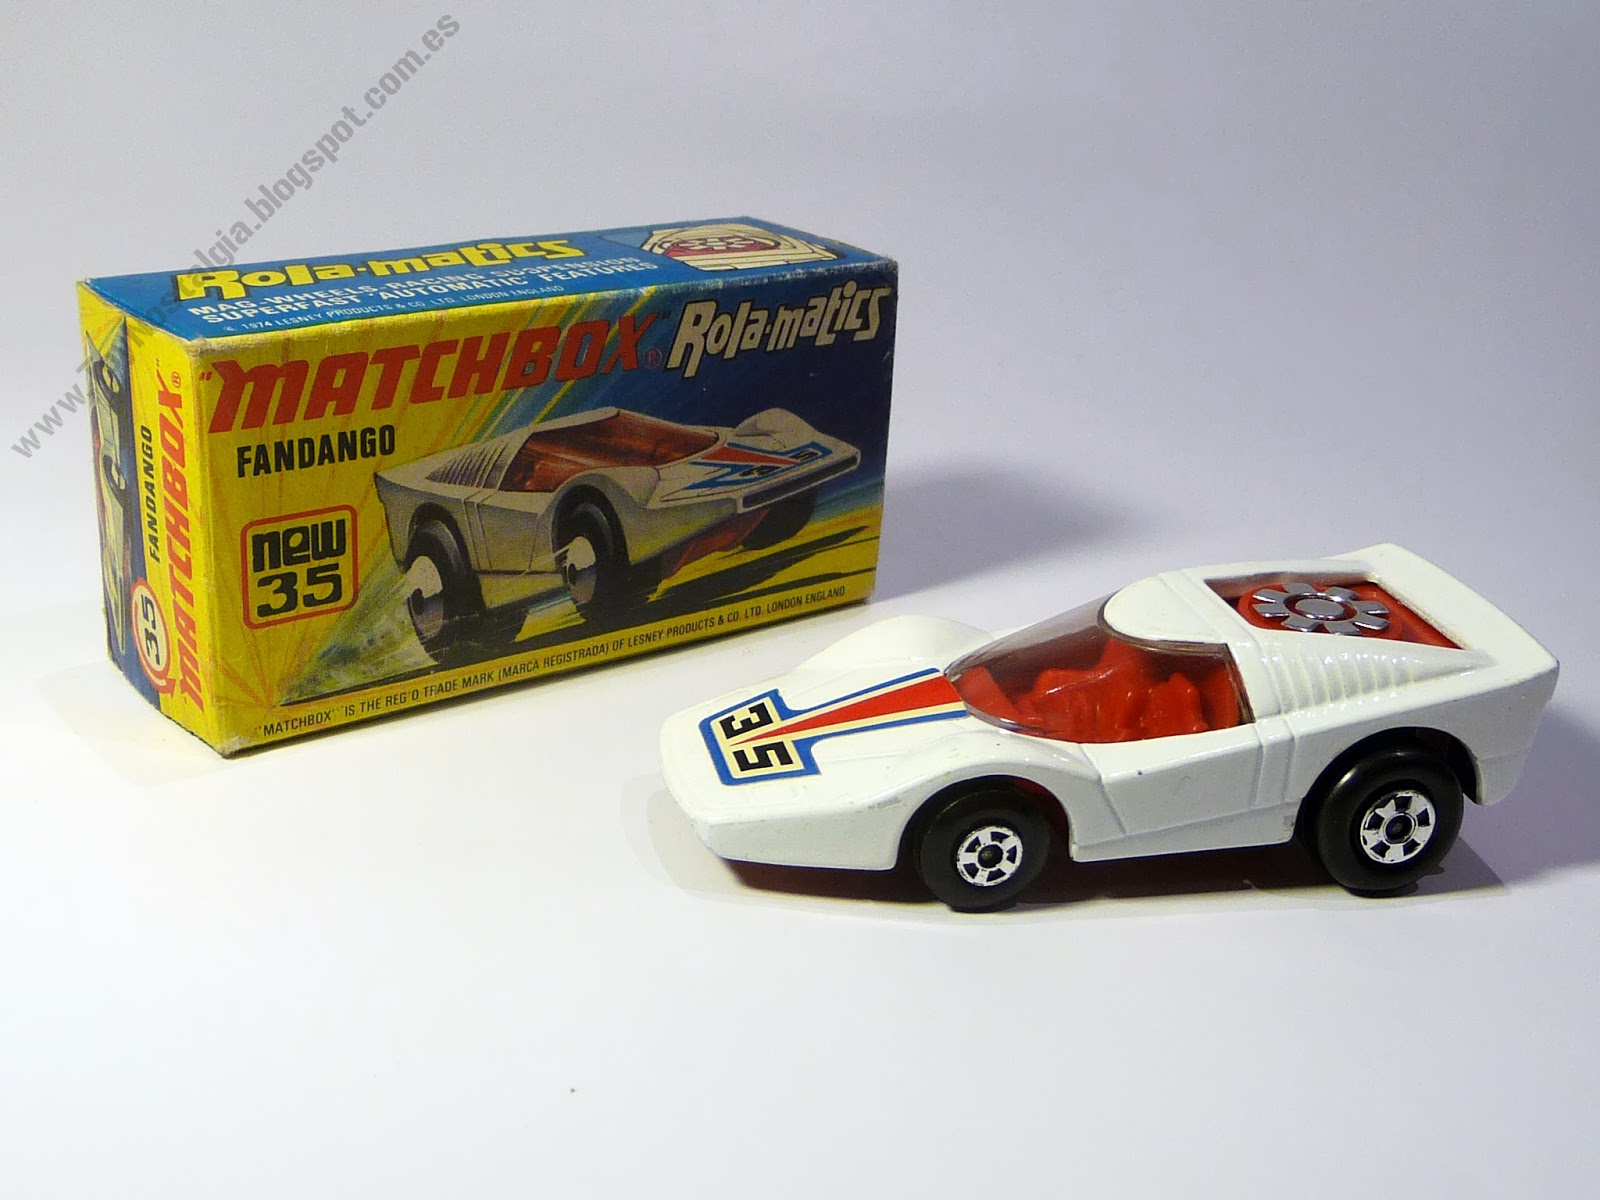 matchbox superfast die cast model cars